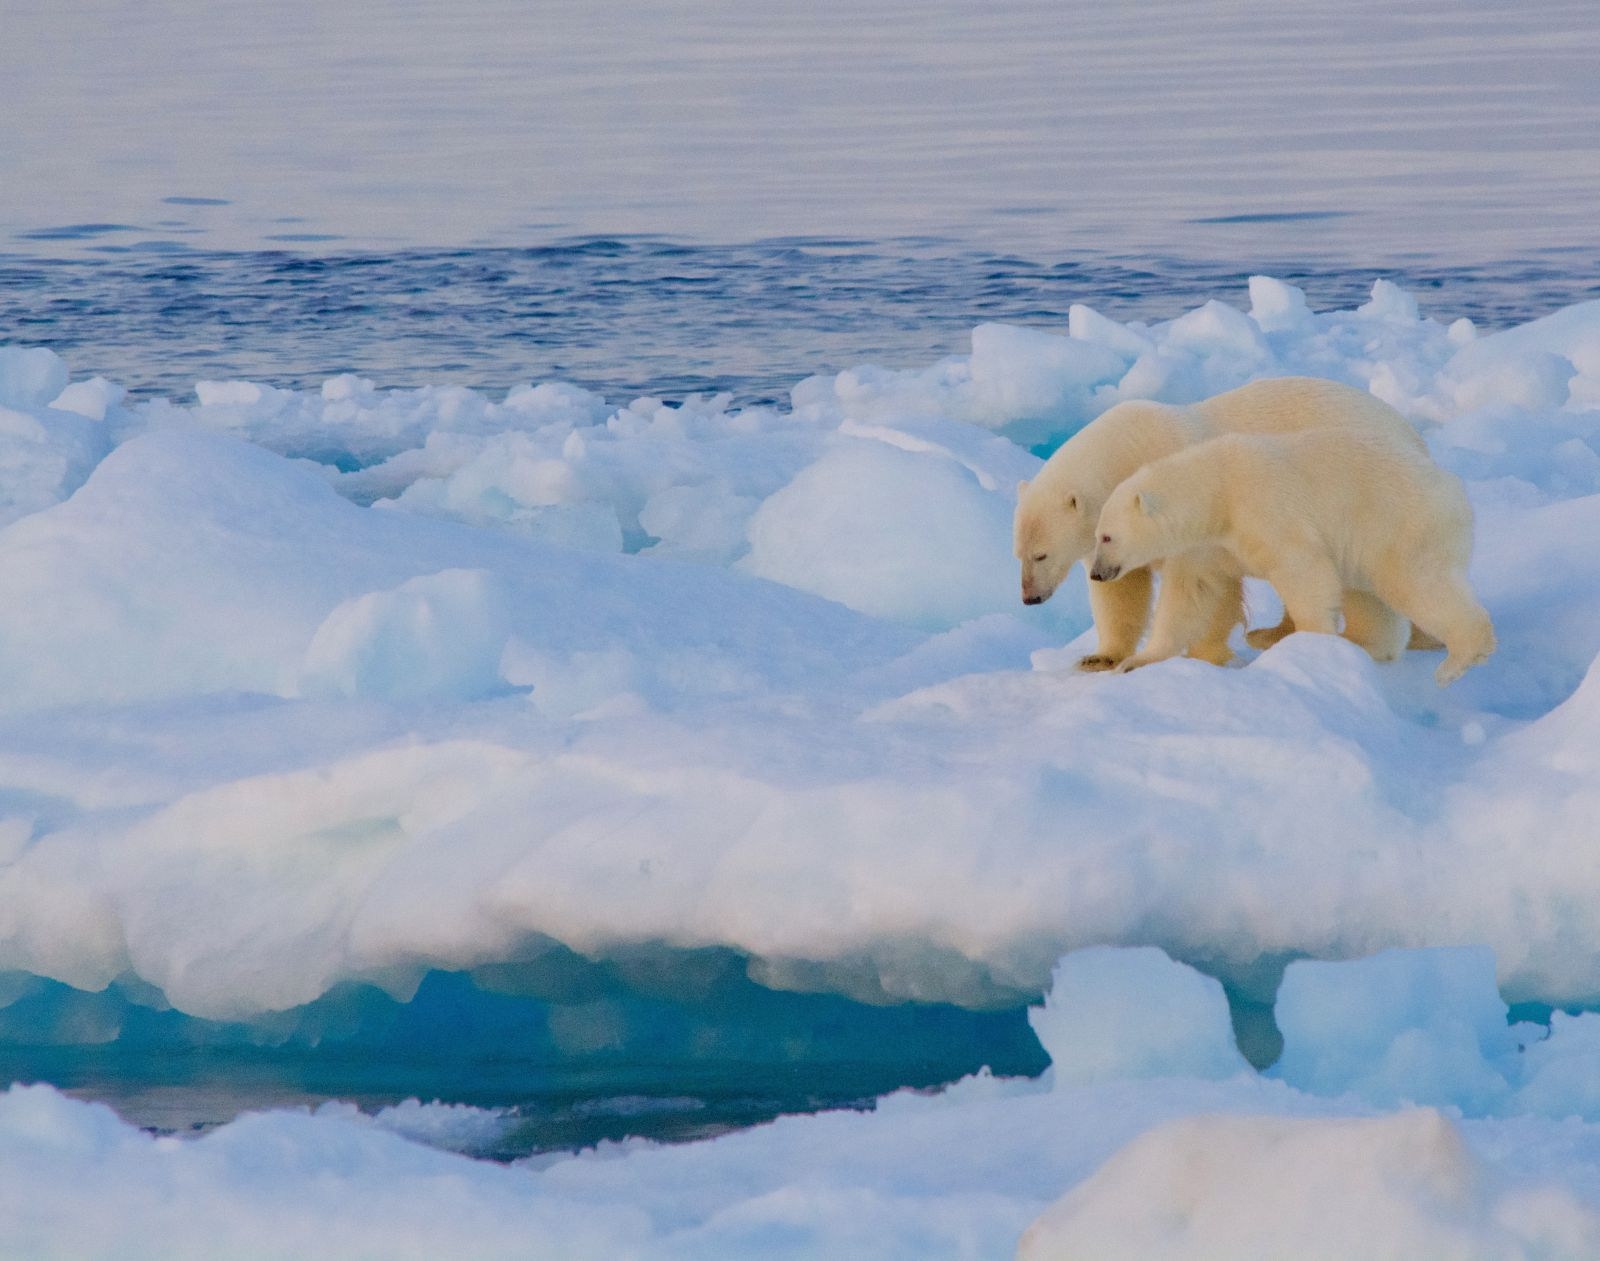 polar-bear-and-cub-ice-floe-adventure-canada